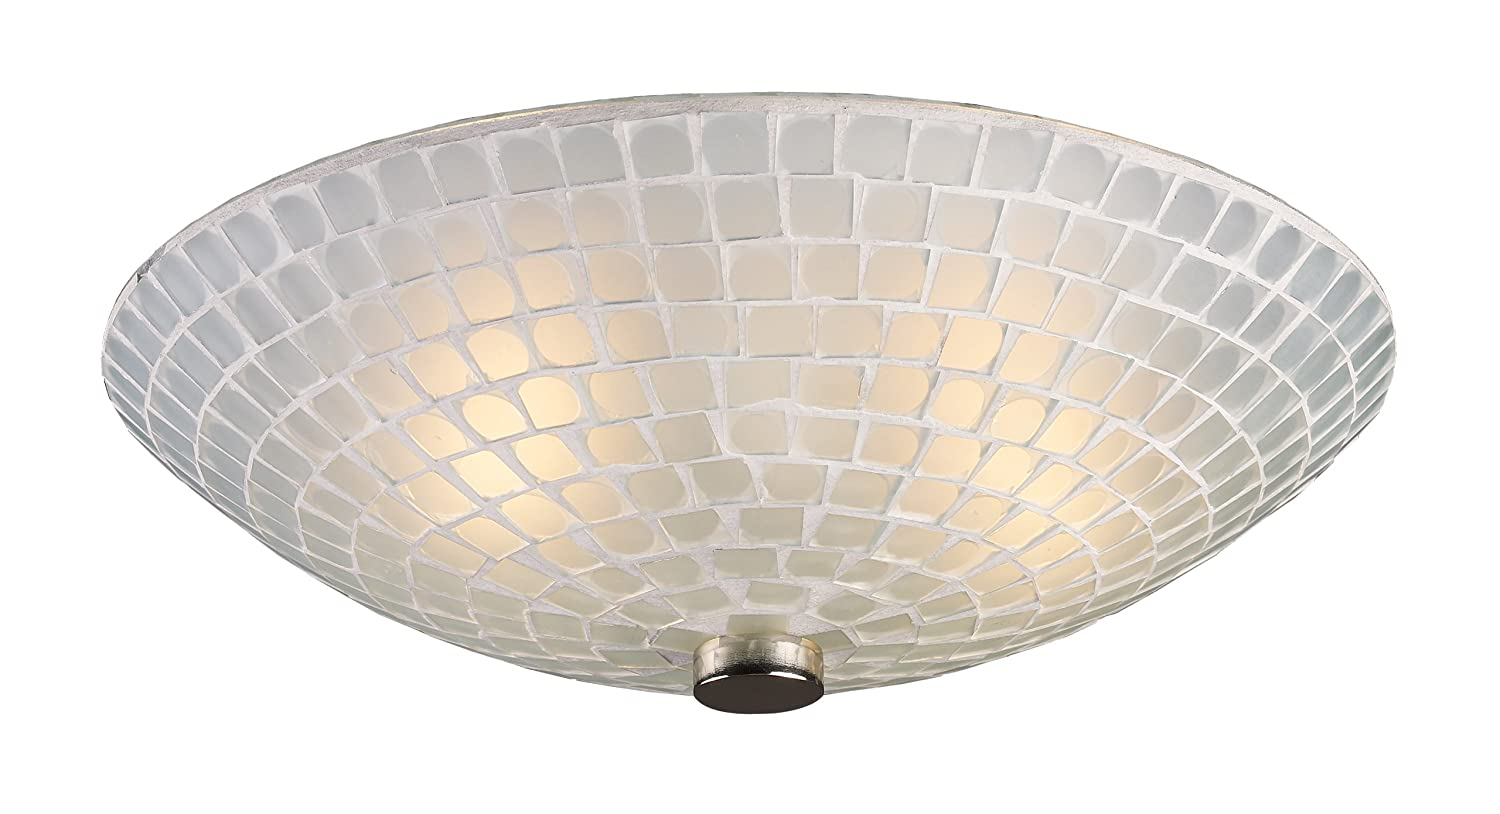 Elk 10139 2wht Fusion 2 Light Semi Flush In Satin Nickel And White Mosaic Glass Mount Ceiling Fixtures Com